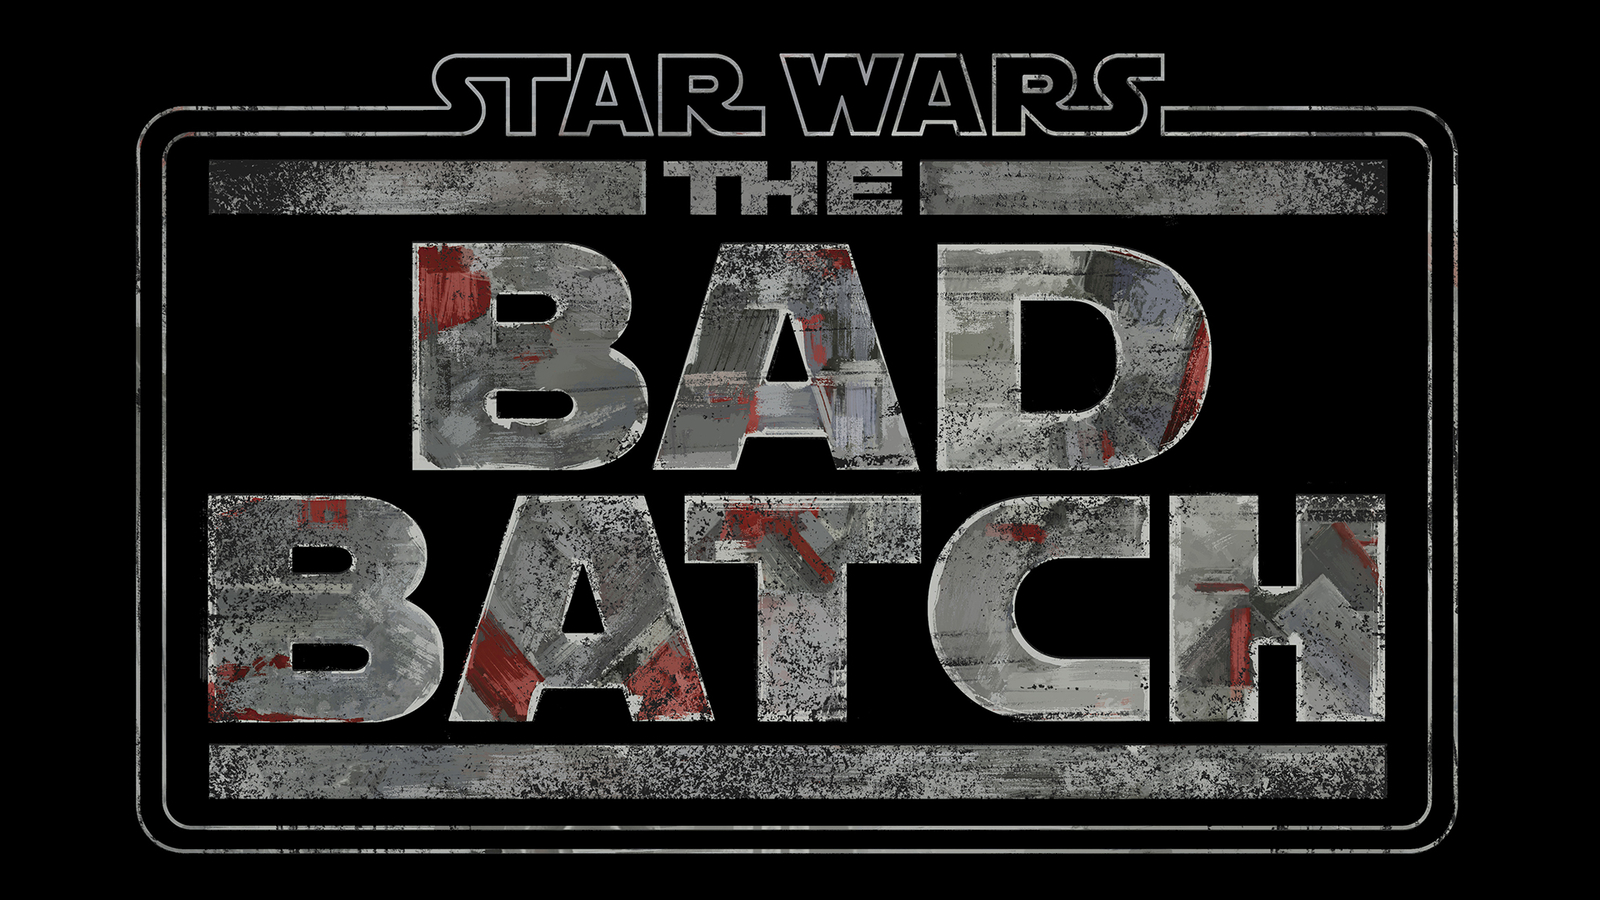 New Star Wars series 'The Bad Batch' to debut on Disney+ - ABC7 Chicago